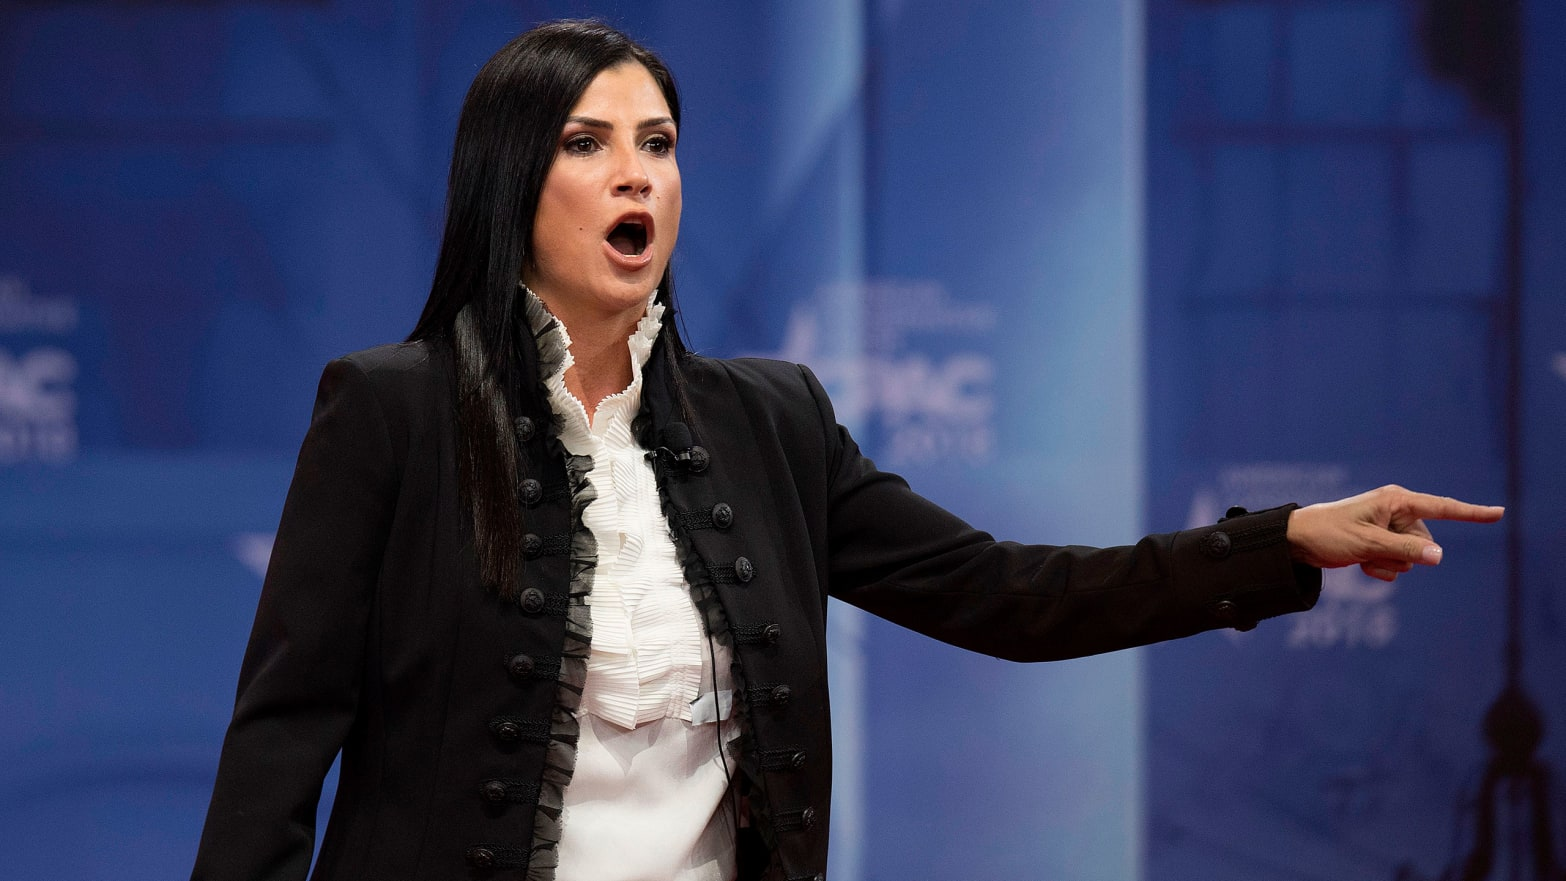 Dear Dana Loesch: How Do You Sleep at Night?